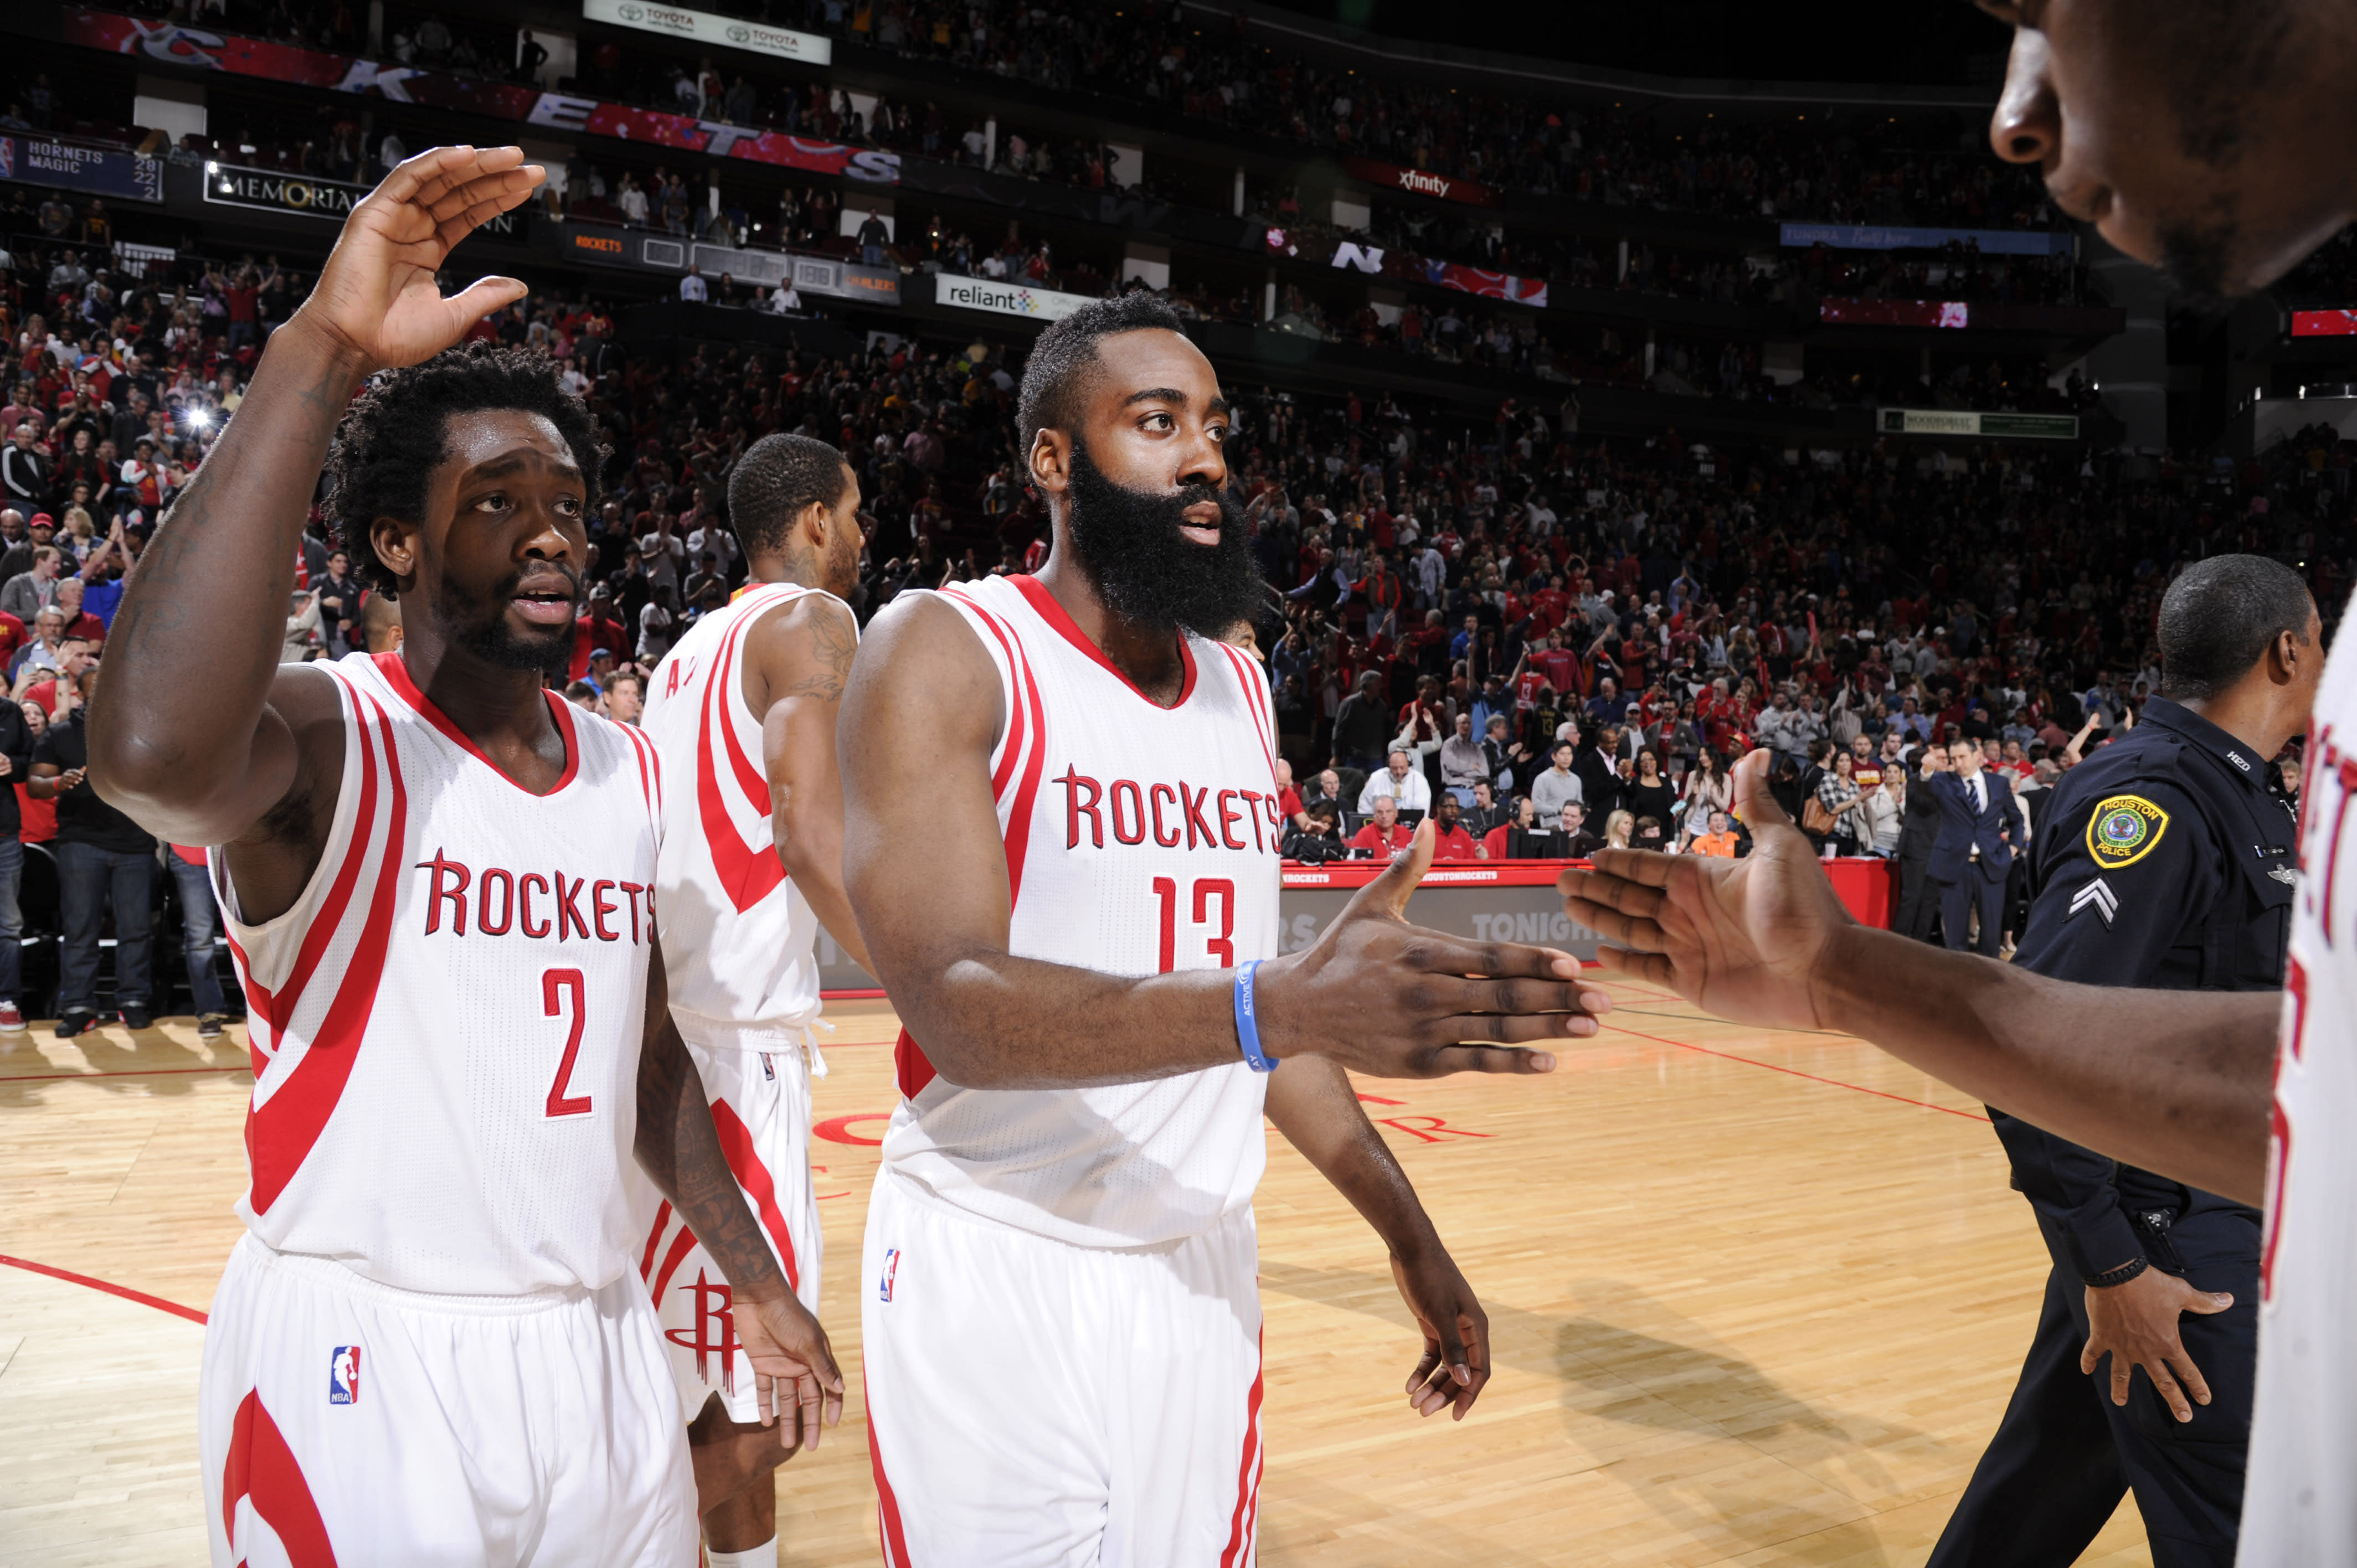 Harden's 33 points leads Rockets over Cavs 105-103 in OT